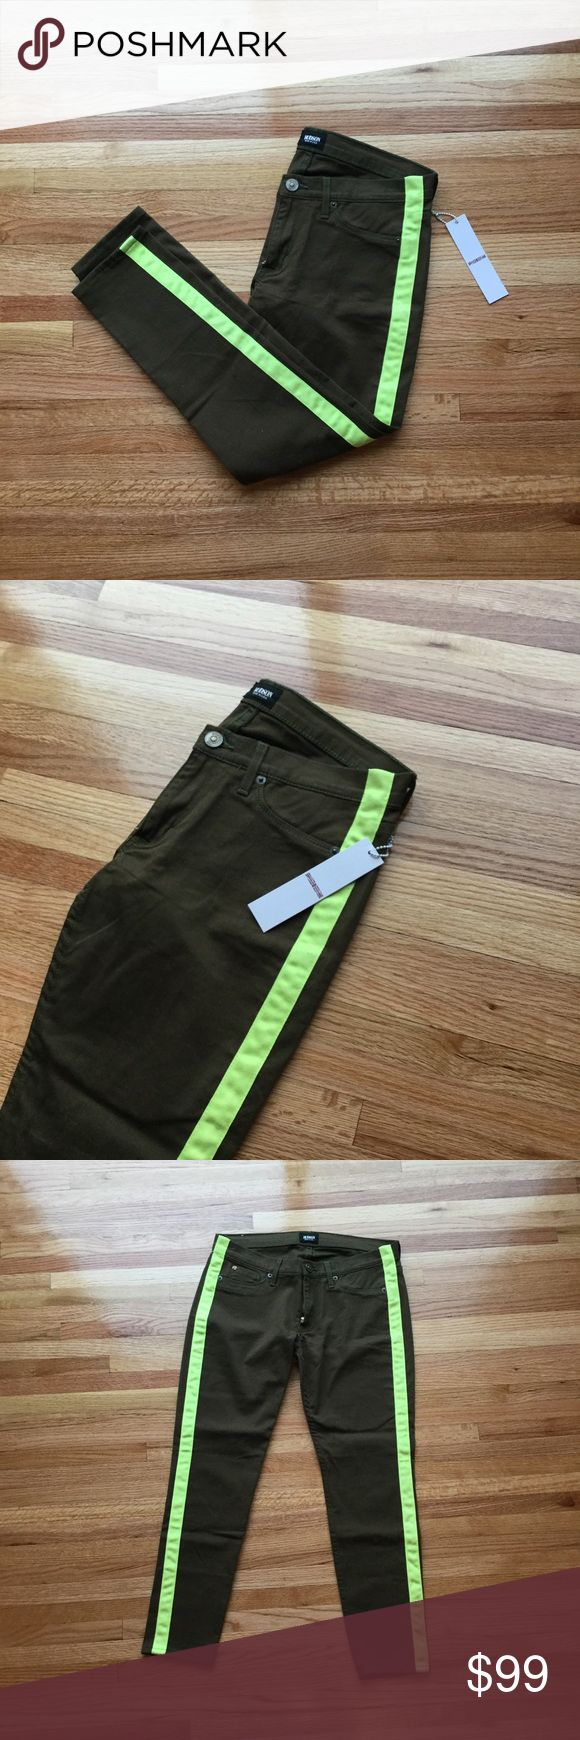 Hudson loulou tuxedo pants size 28 Hudson loulou tuxedo pants. Size 28. Forest green with lime green strips on the sides. New with tags. Hudson Pants